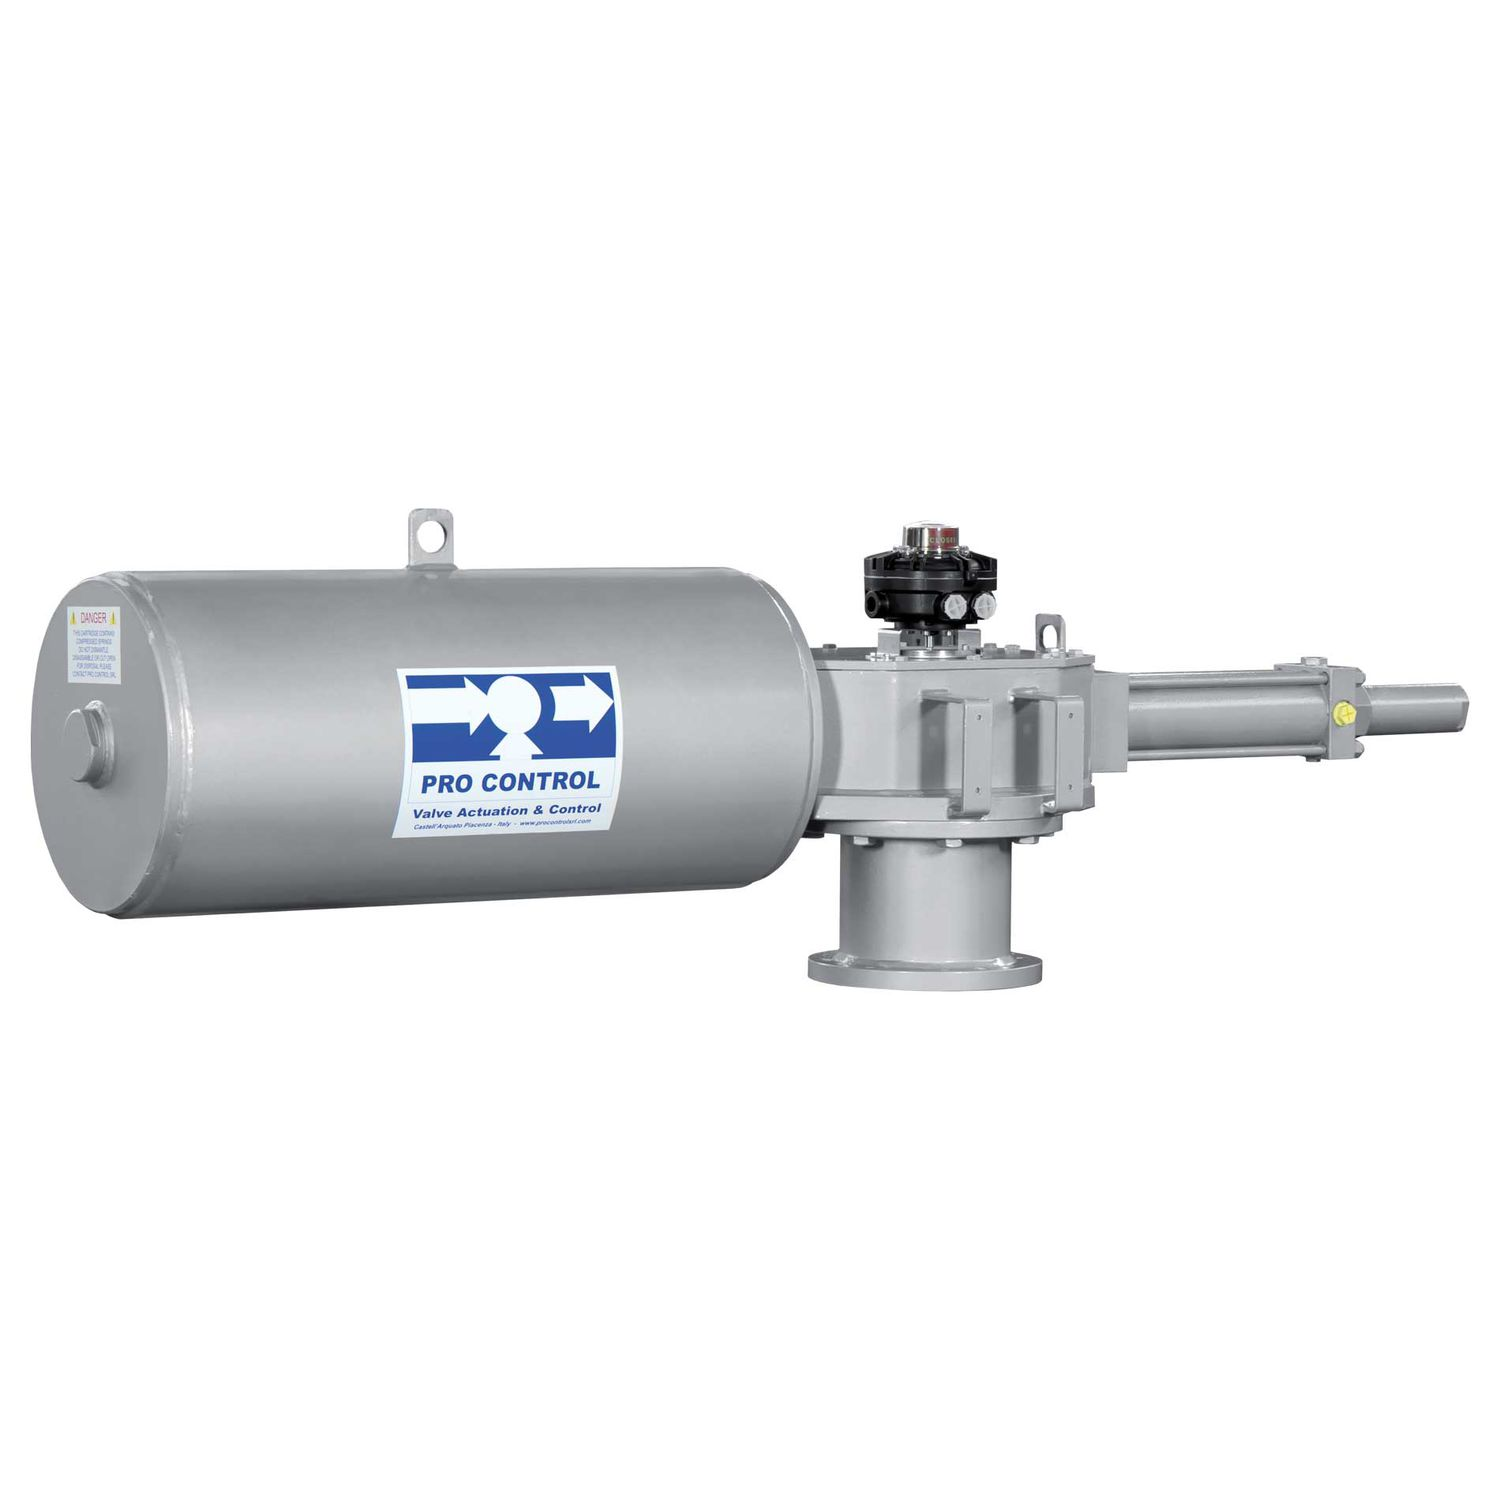 Linear actuator / hydraulic / double-acting / single-acting